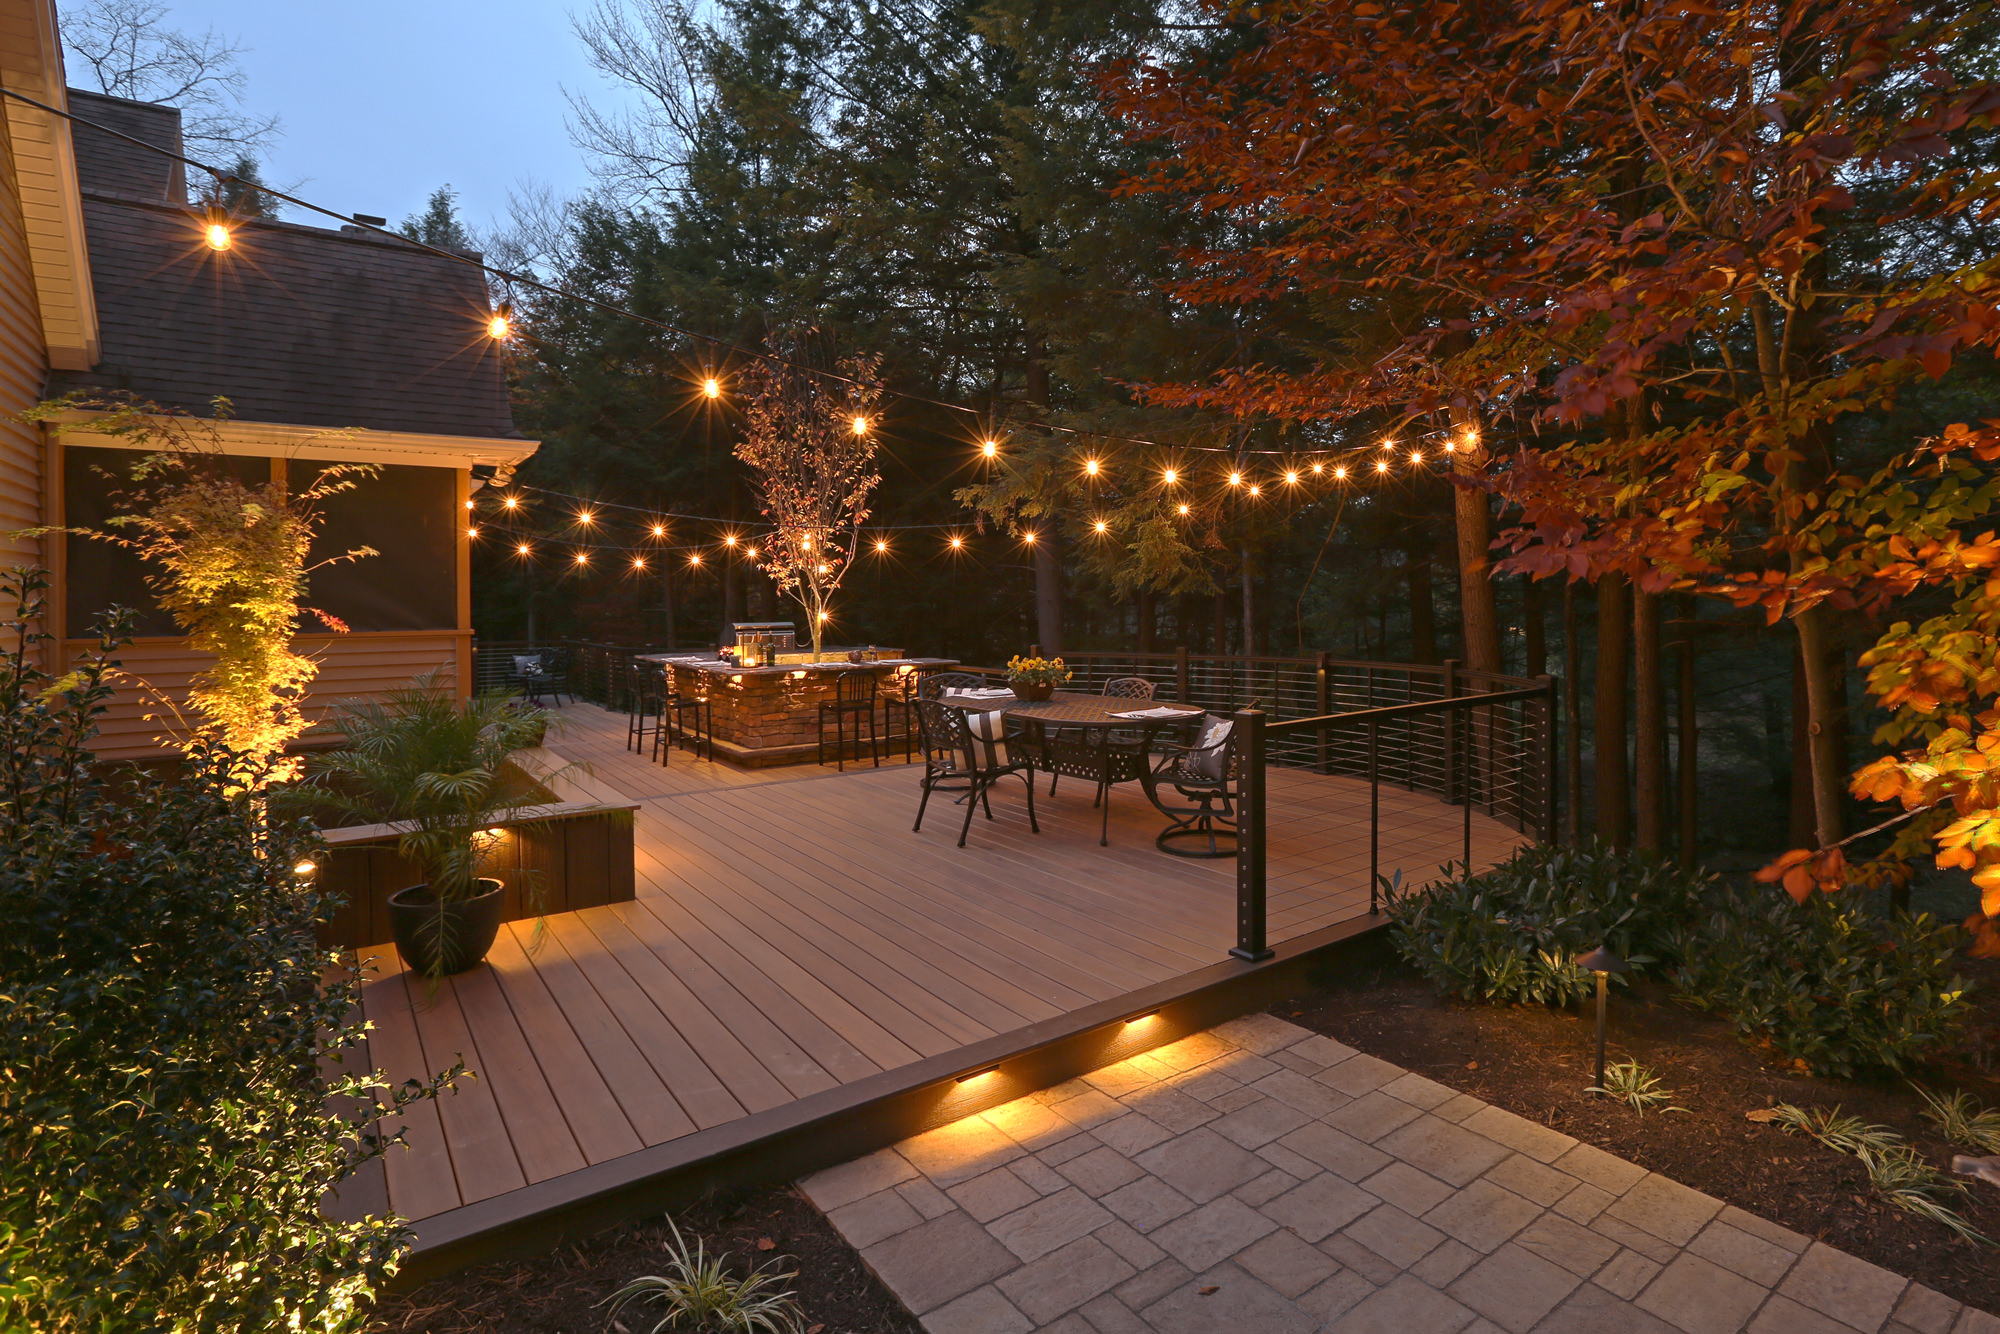 This custom deck comes to life when the sun goes down and the landscape lighting turns on. The space is stunningly finished with Edison string lights creating a romantic environment.